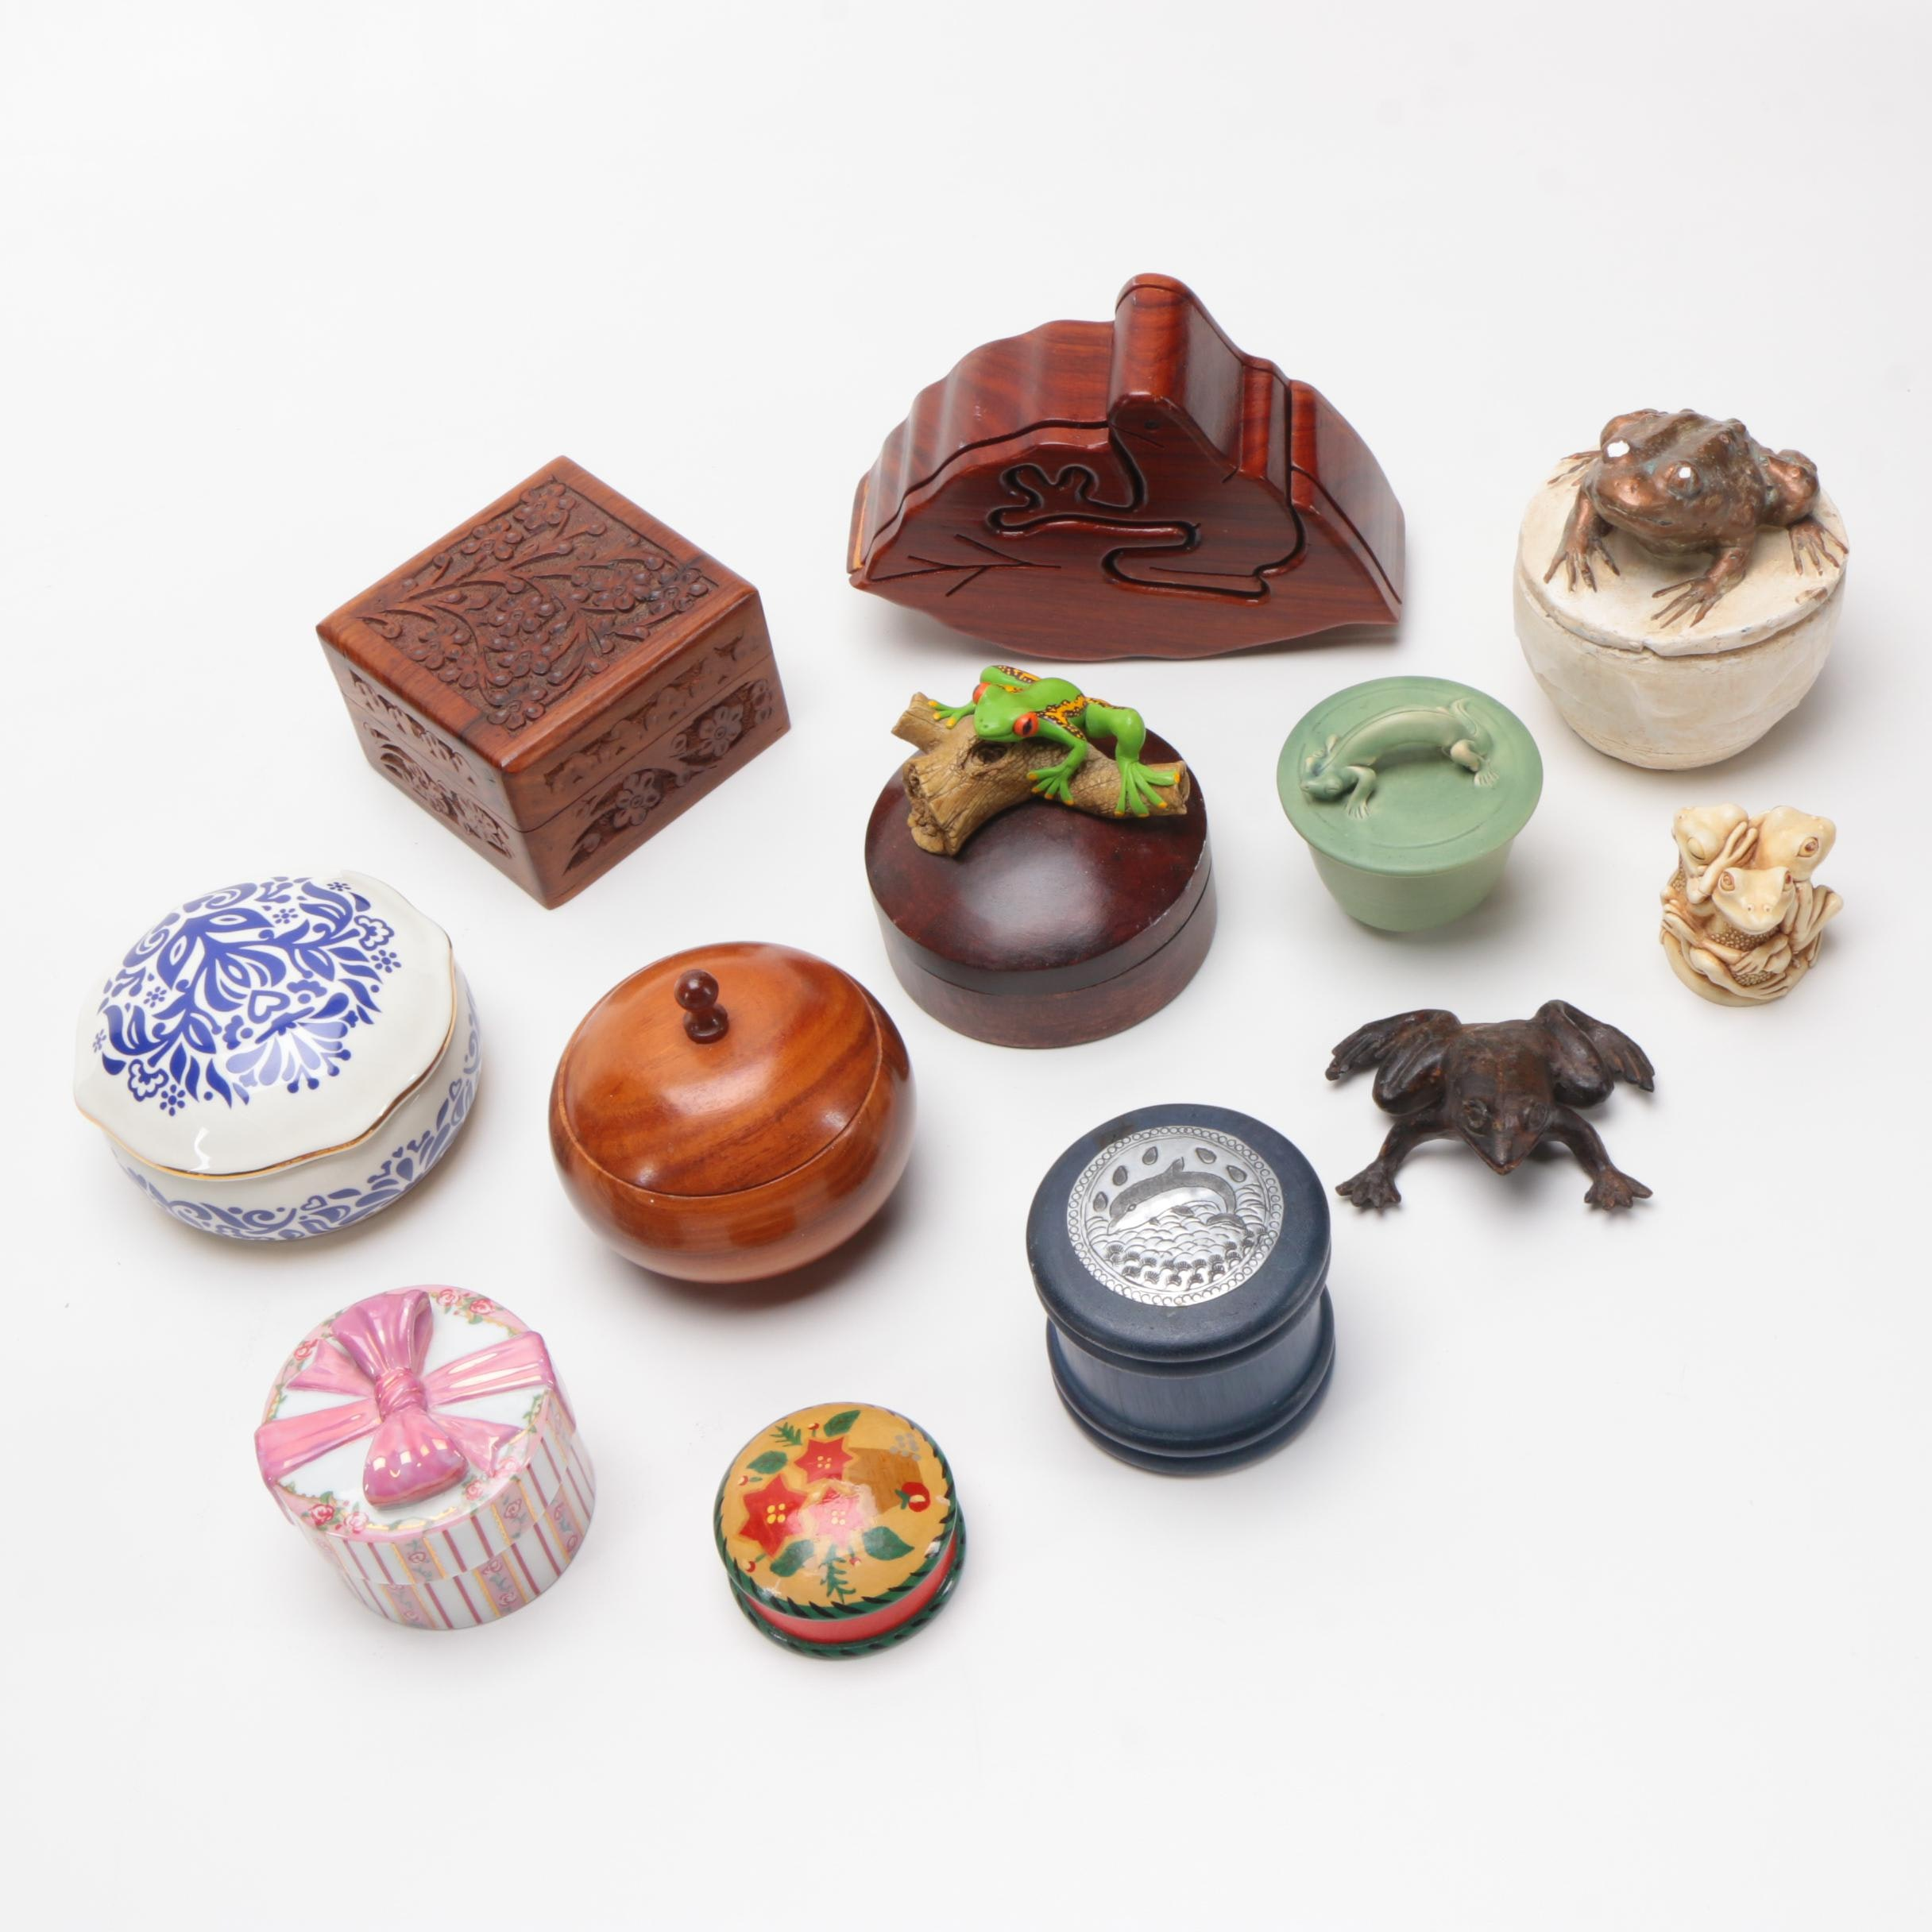 Trinket Boxes and Decor